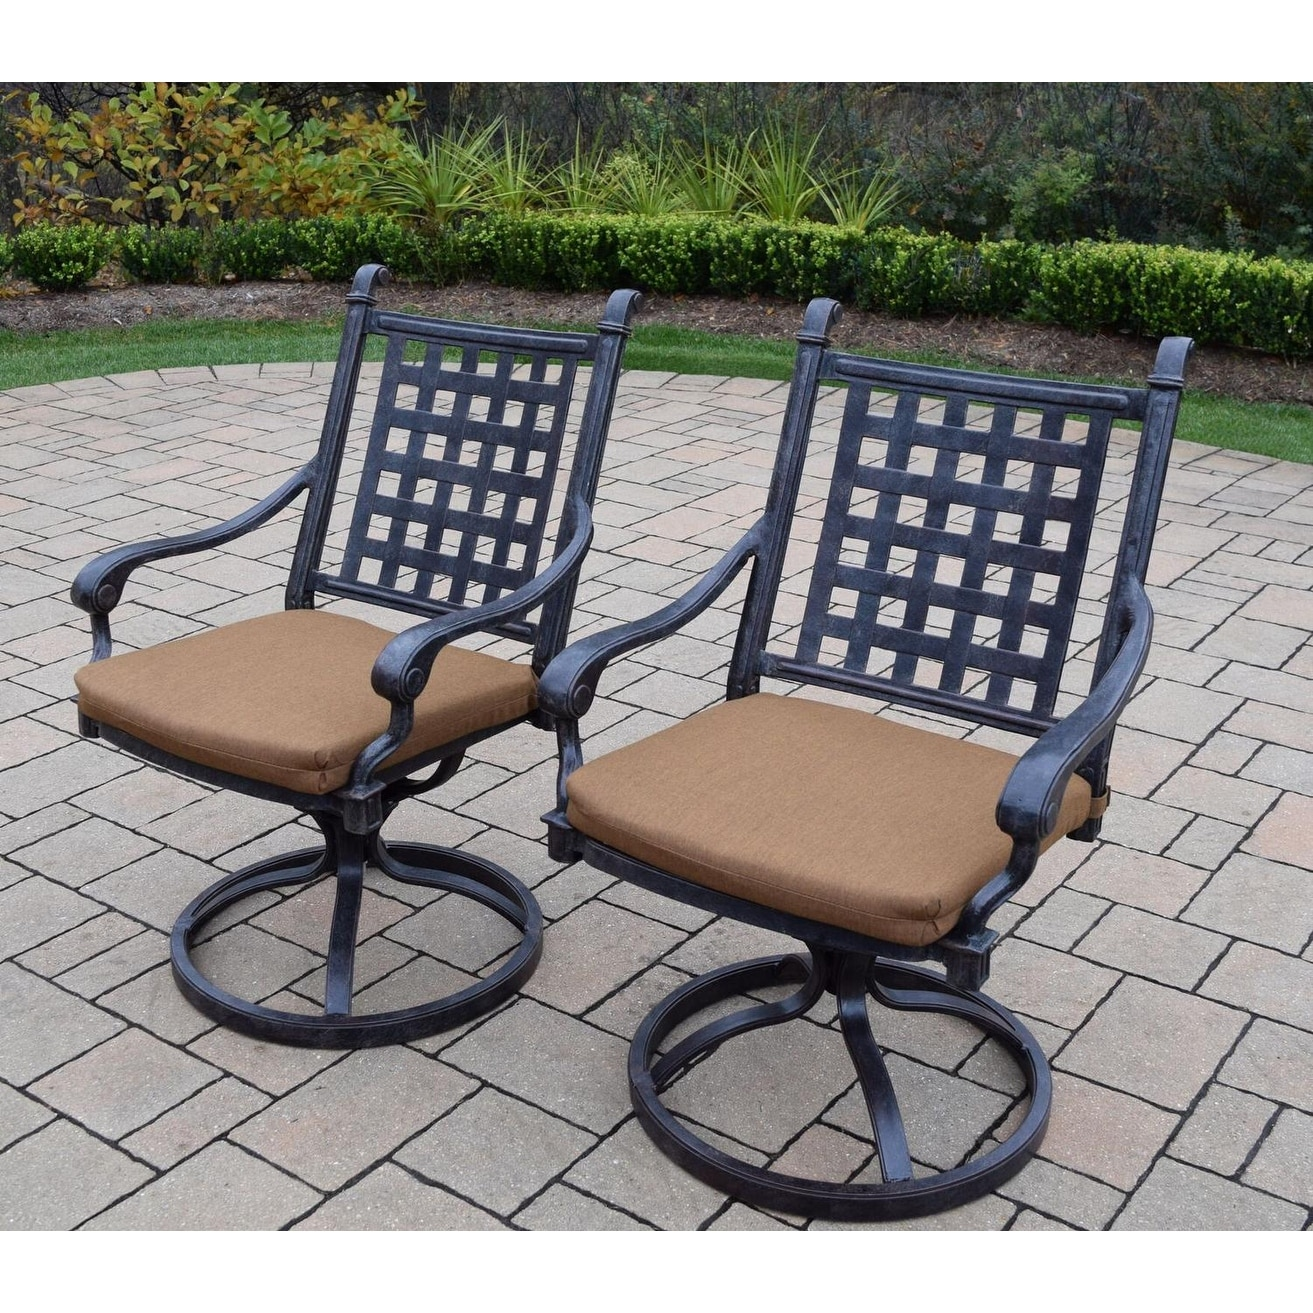 Aluminum Outdoor Patio Swivel Chairs